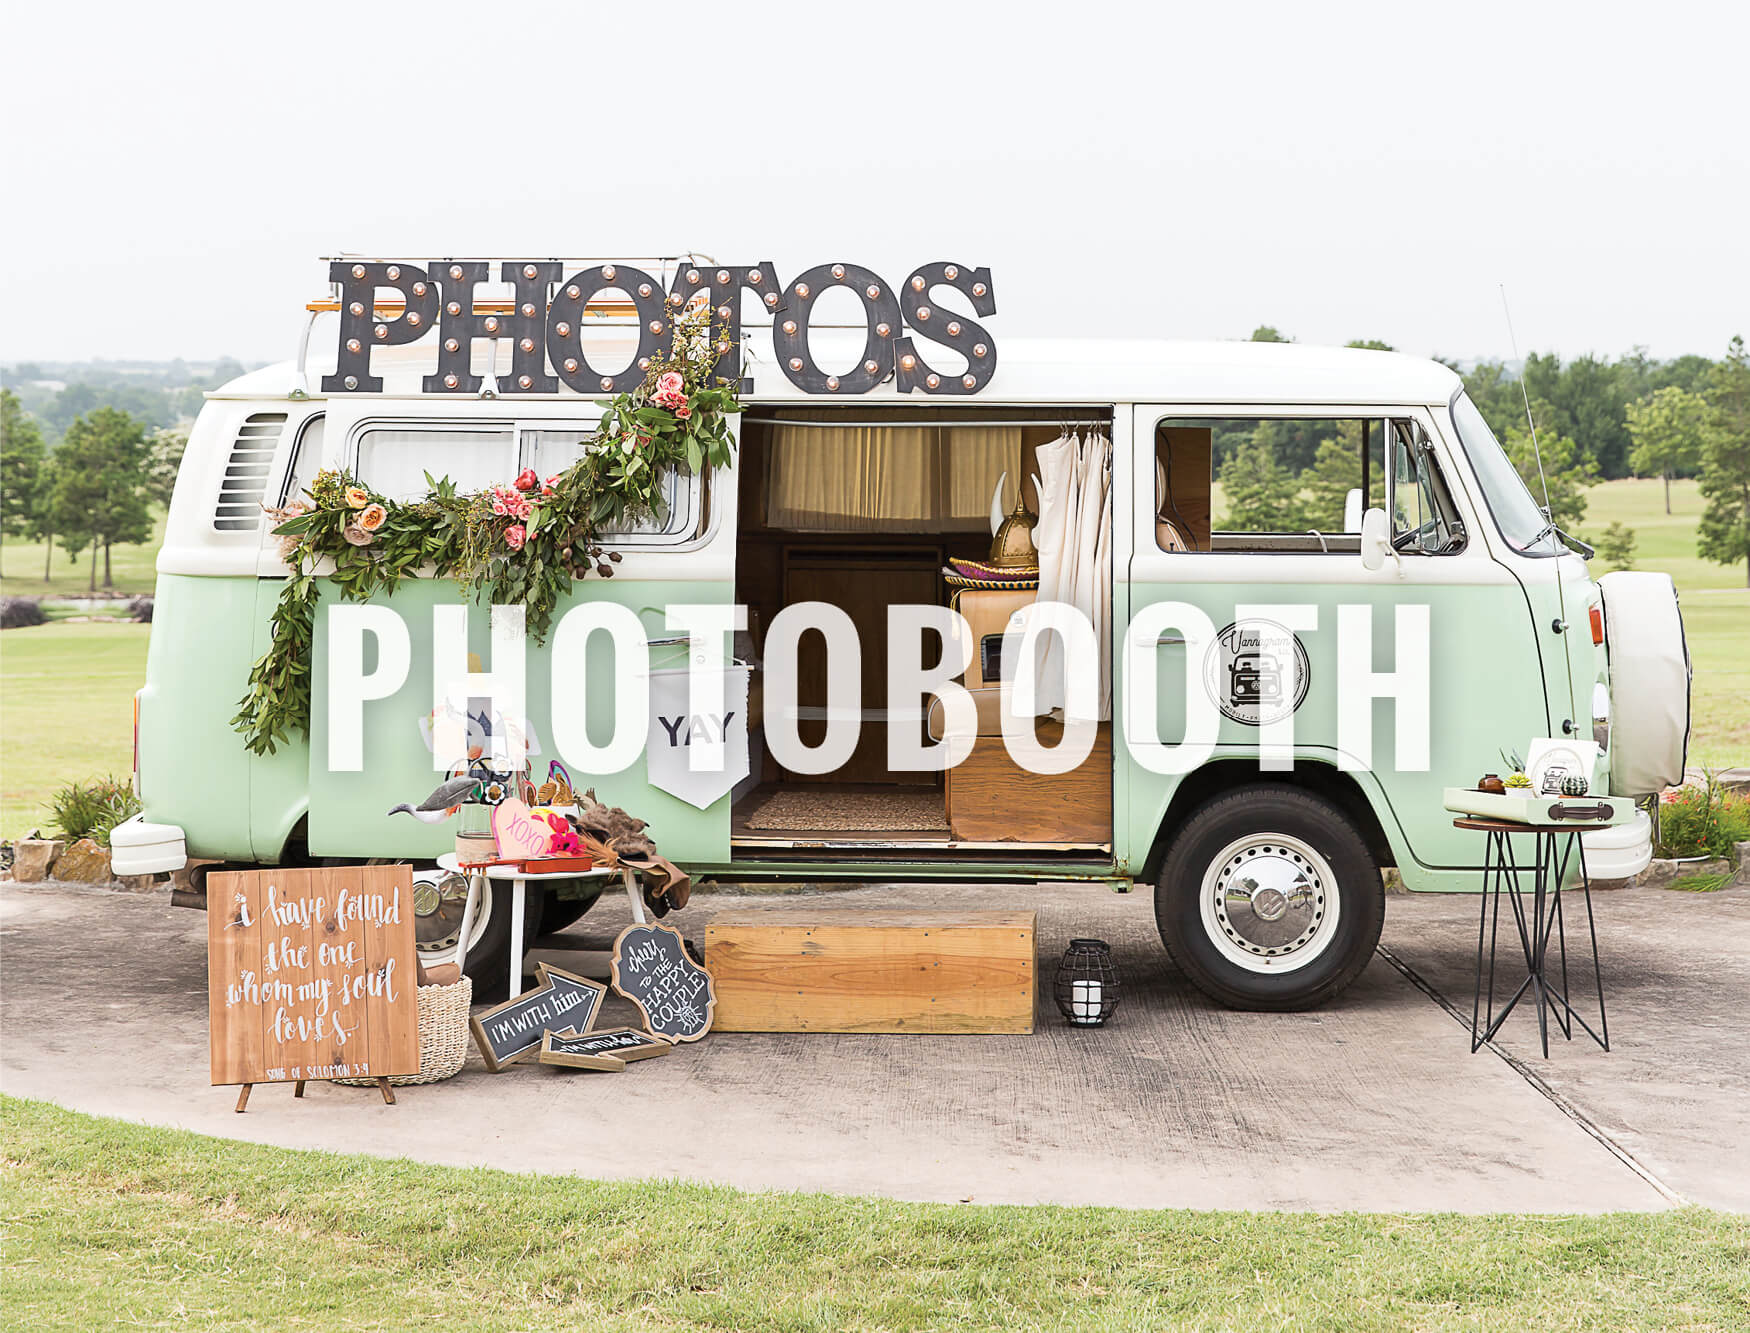 North Texas Photo Booth